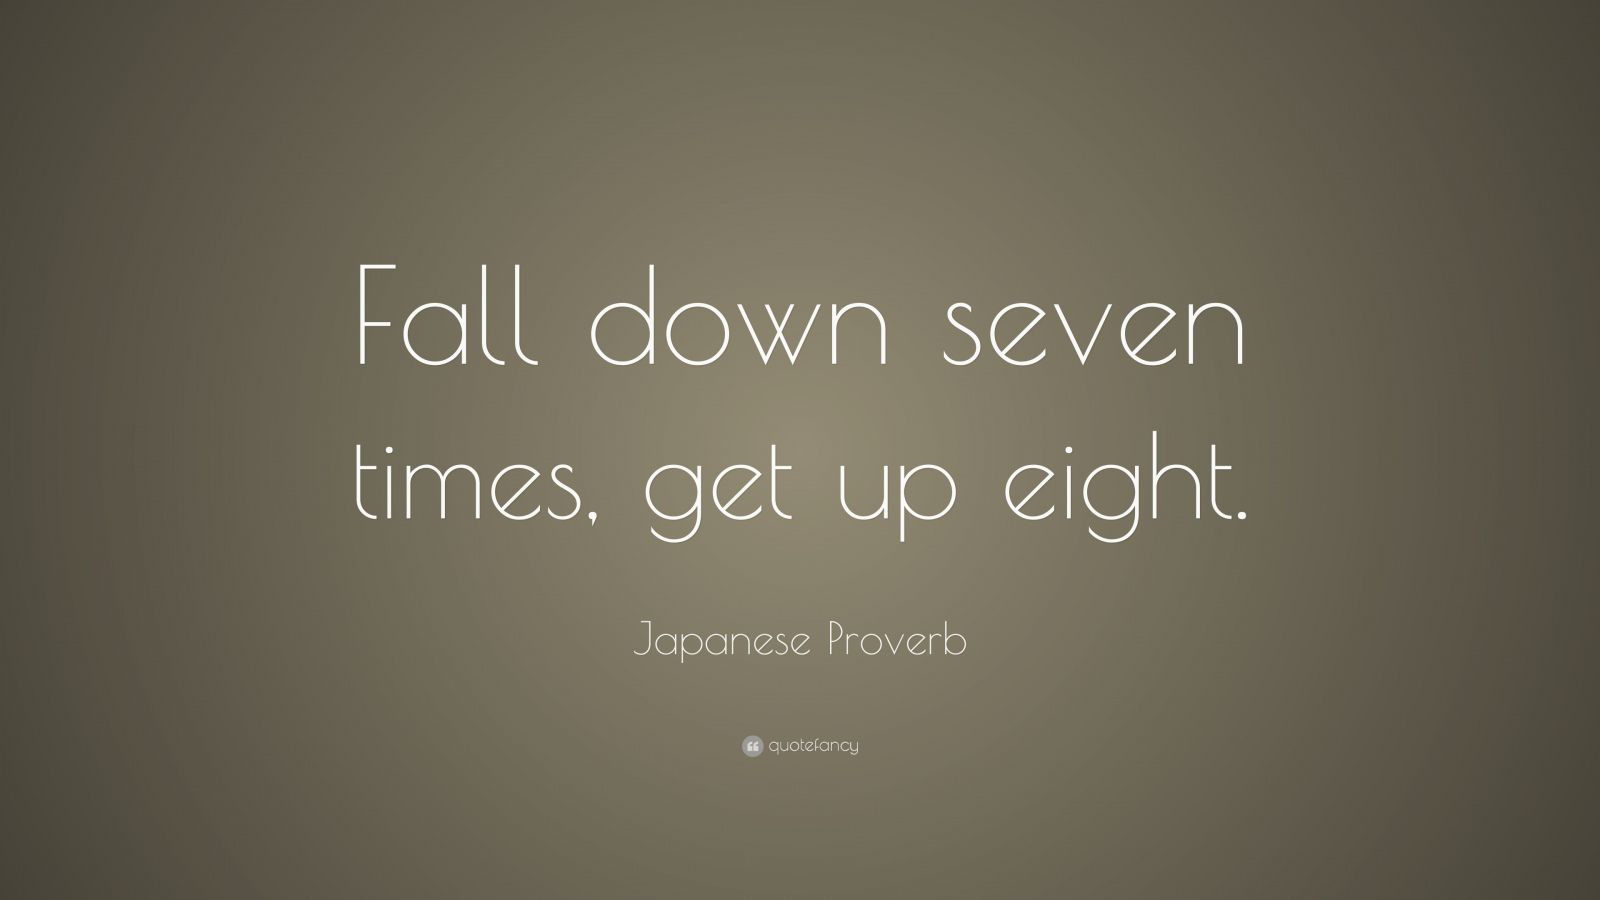 Steve Jobs Motivational Quotes Wallpaper Japanese Proverb Quote Fall Down Seven Times Get Up